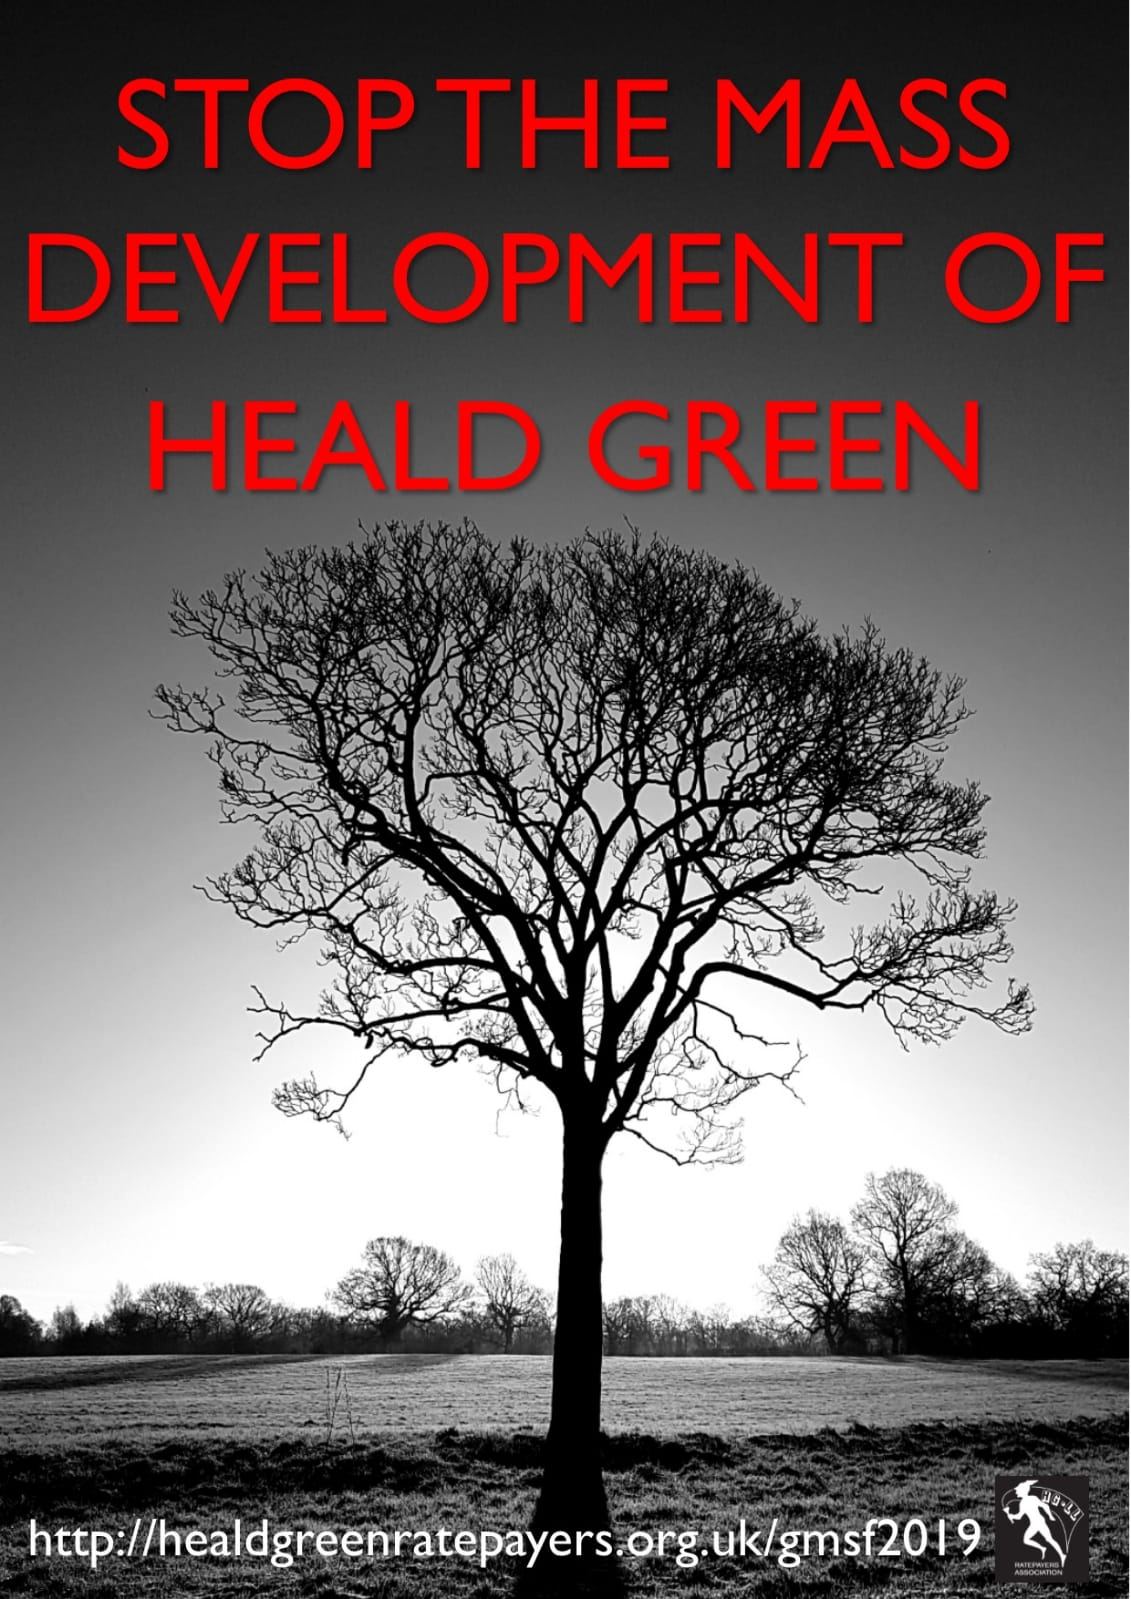 Join the fight for Heald Green!